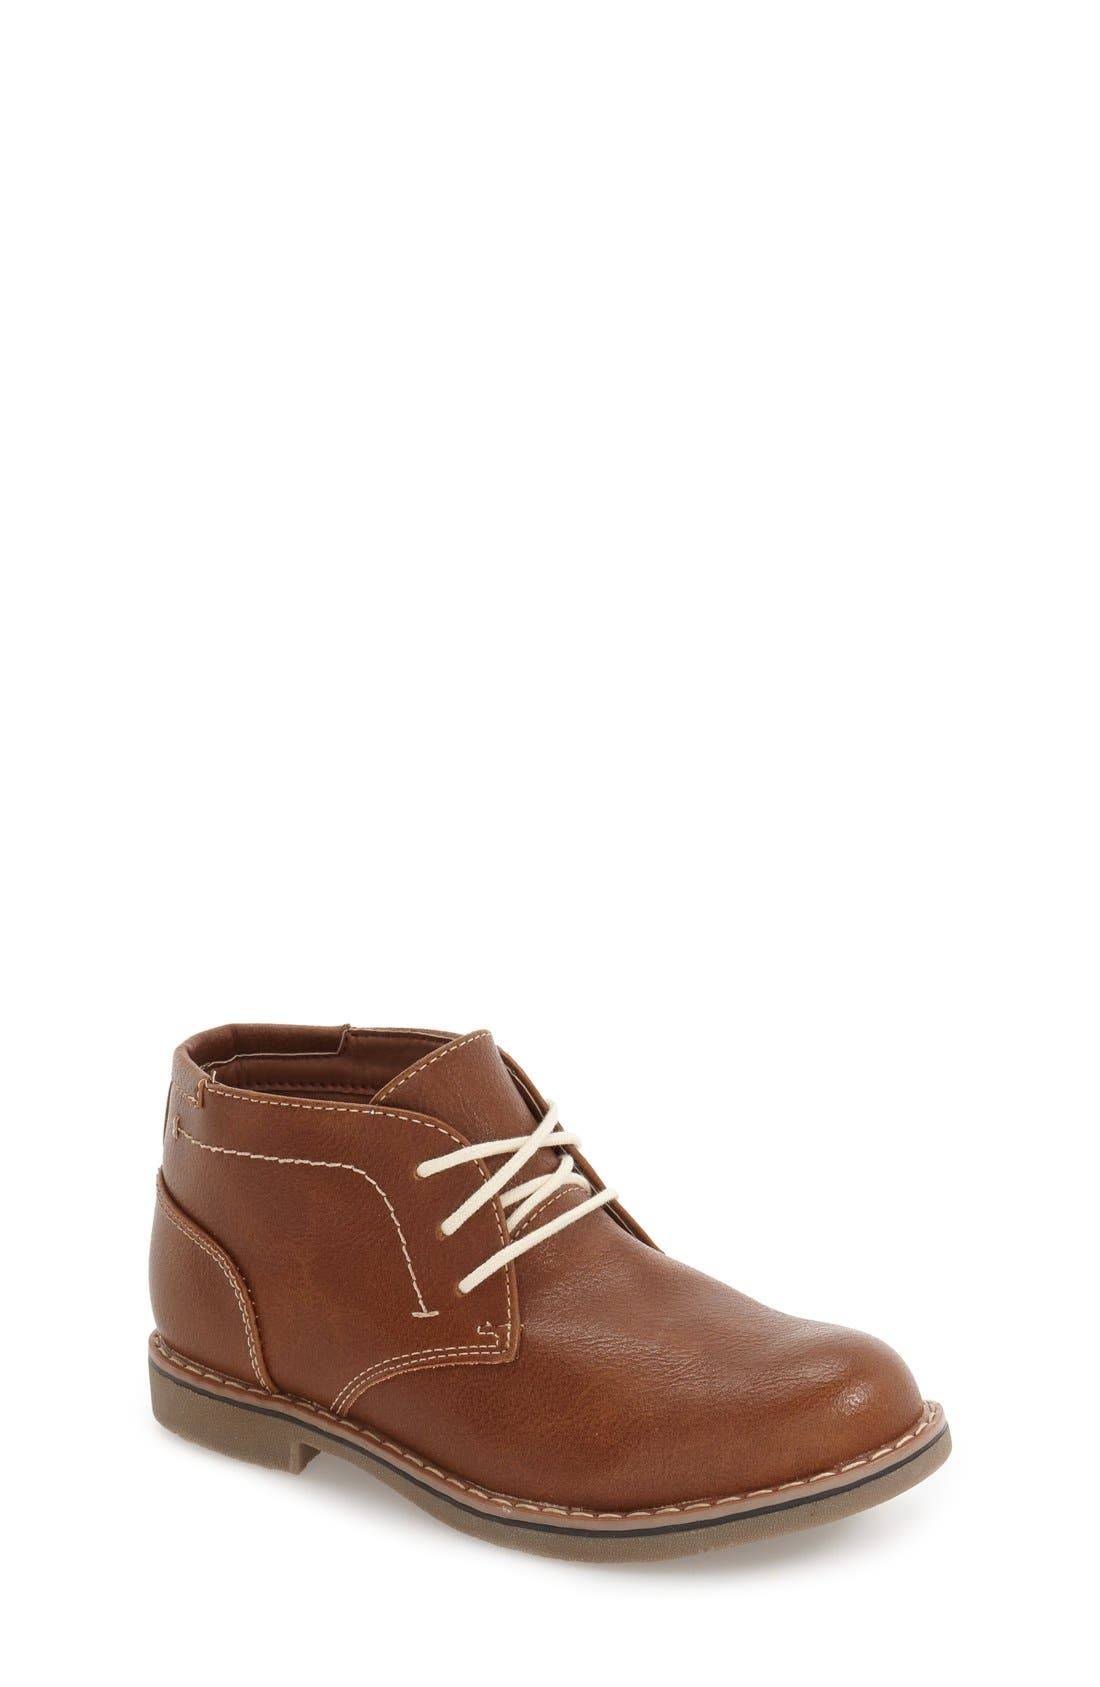 Classic Chukka Boot,                         Main,                         color, COGNAC FAUX LEATHER